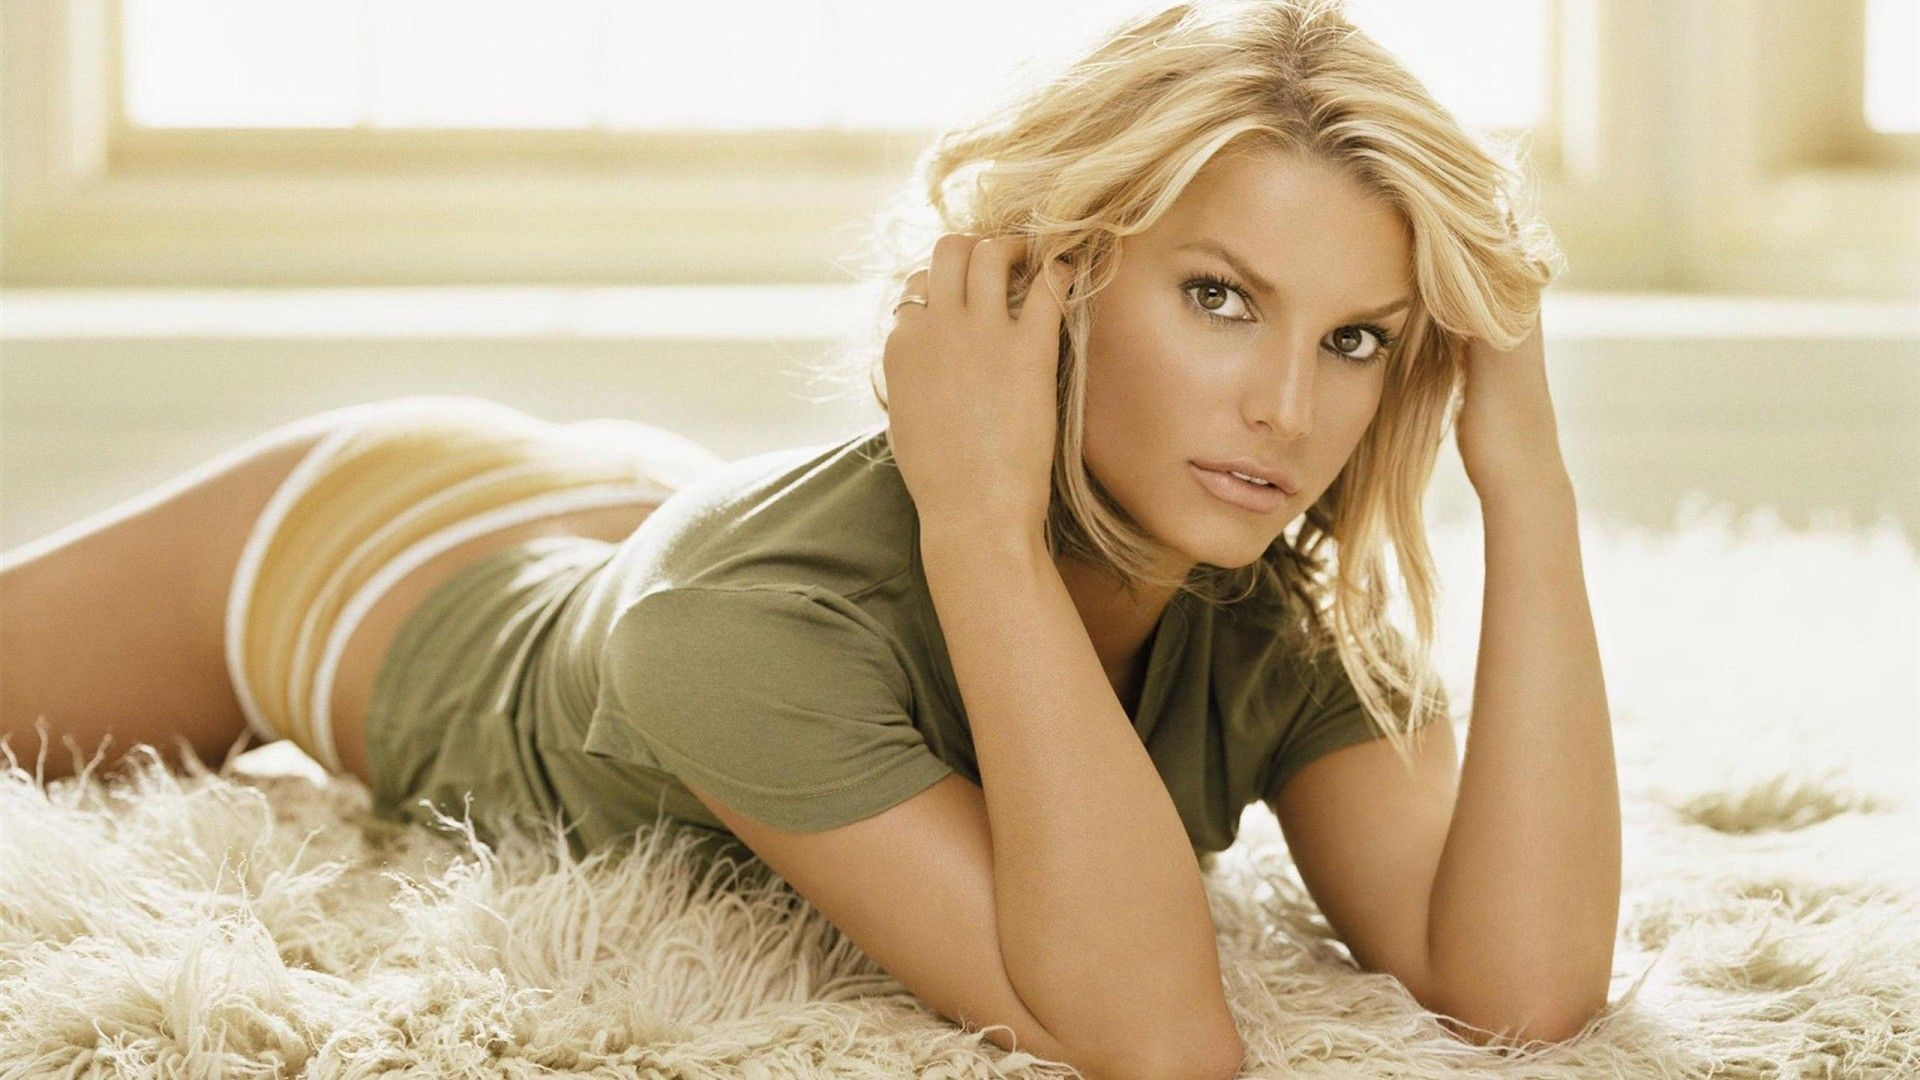 Jessica Simpson 2013 Jessica Simpson Hd Wallpaper Jessica Simpson Jessica Simpson Hot Pictures Of Jessica Simpson